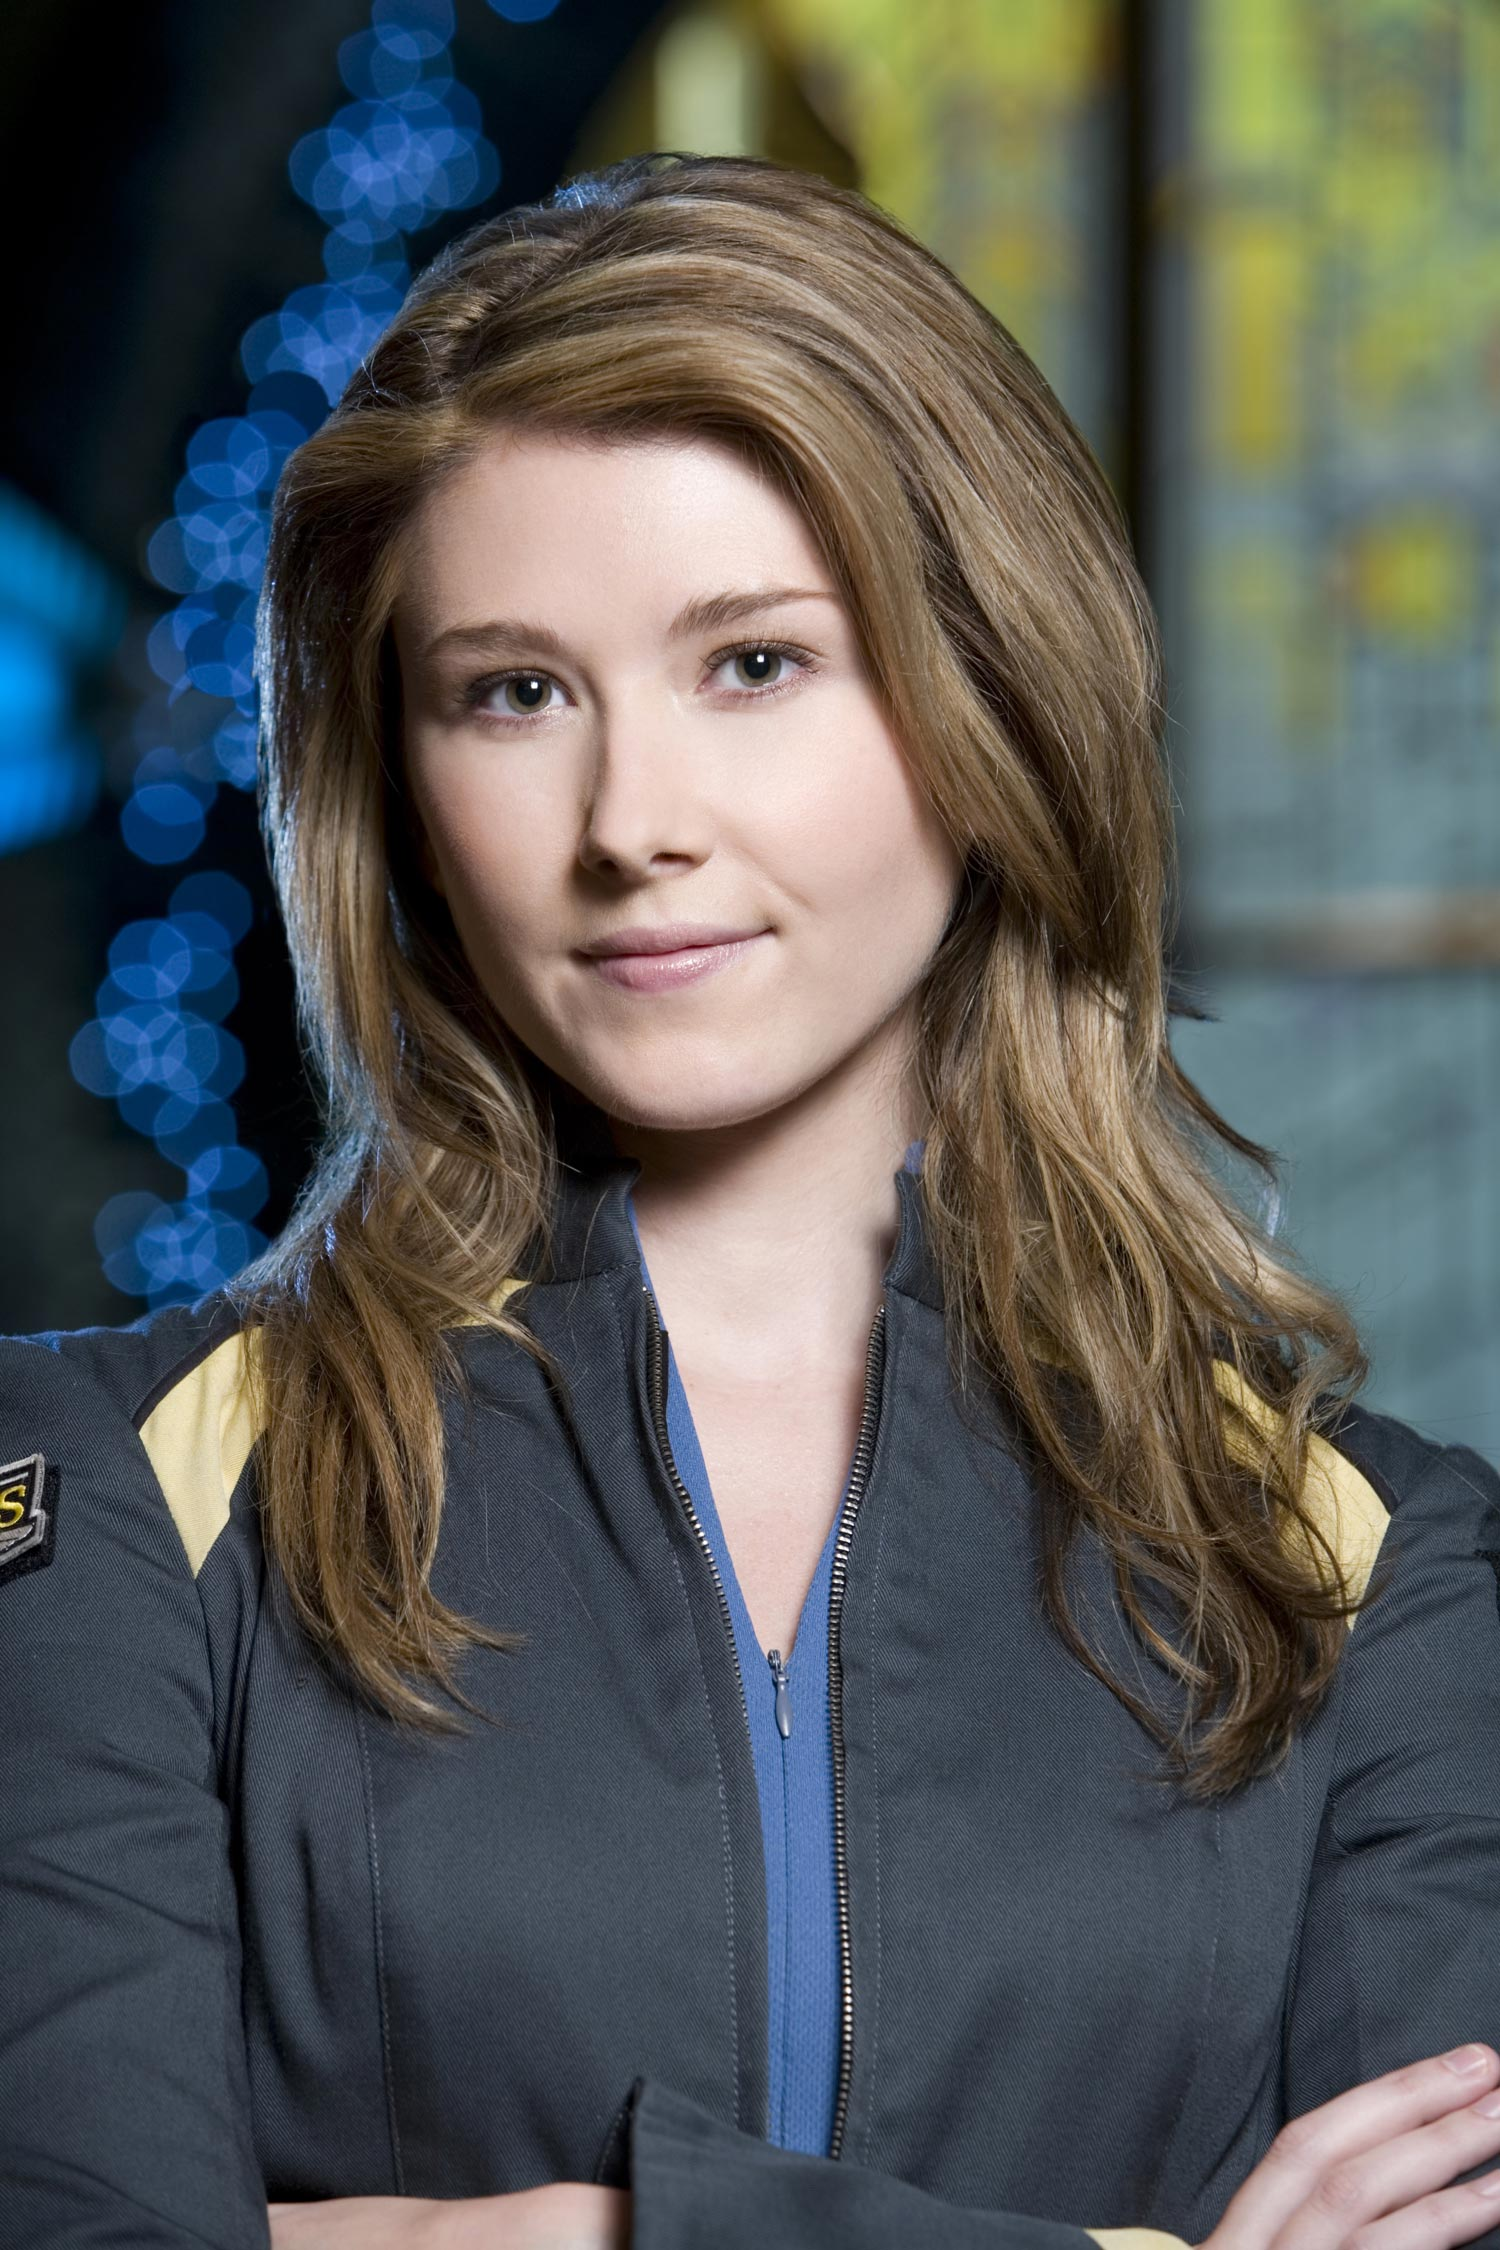 Jewel staite - &;stargate atlantis&; tv series - season 4 promo - high